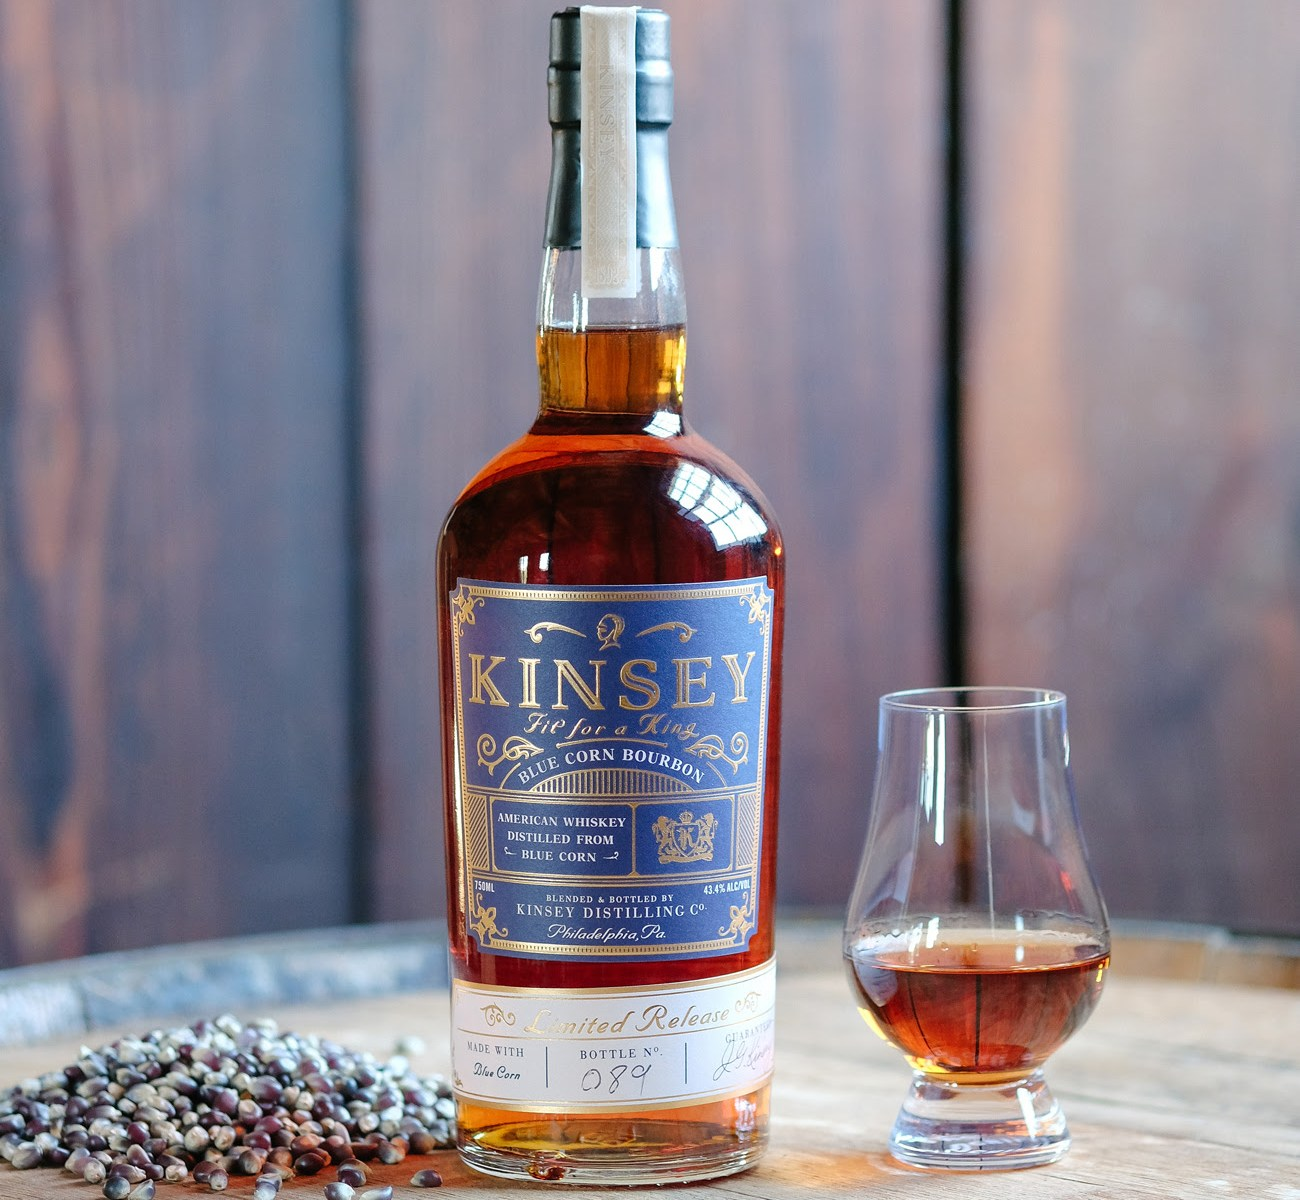 Kinsey Blue Corn Bourbon - Limited New Release